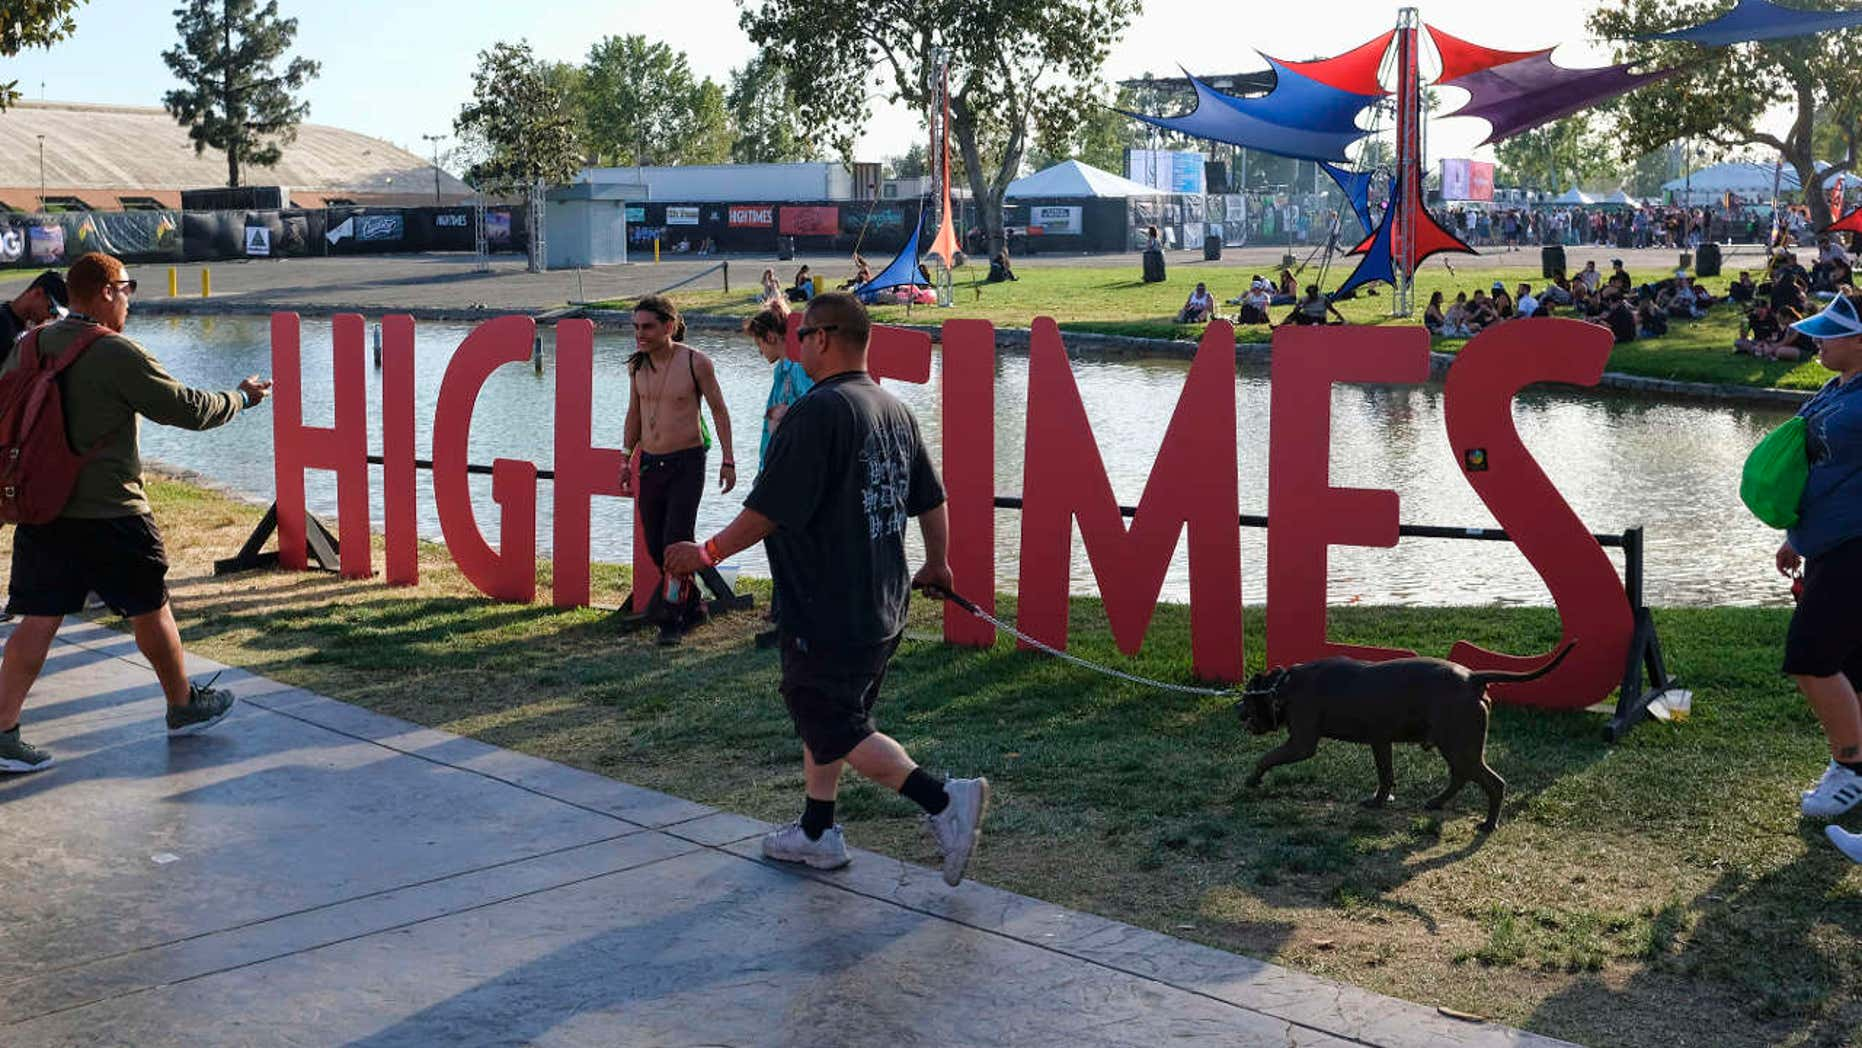 FILE - In this Sunday, April 23, 2017, file photo, visitors arrive at the fairgrounds to attend the High Times Cannabis Cup in San Bernardino, Calif.